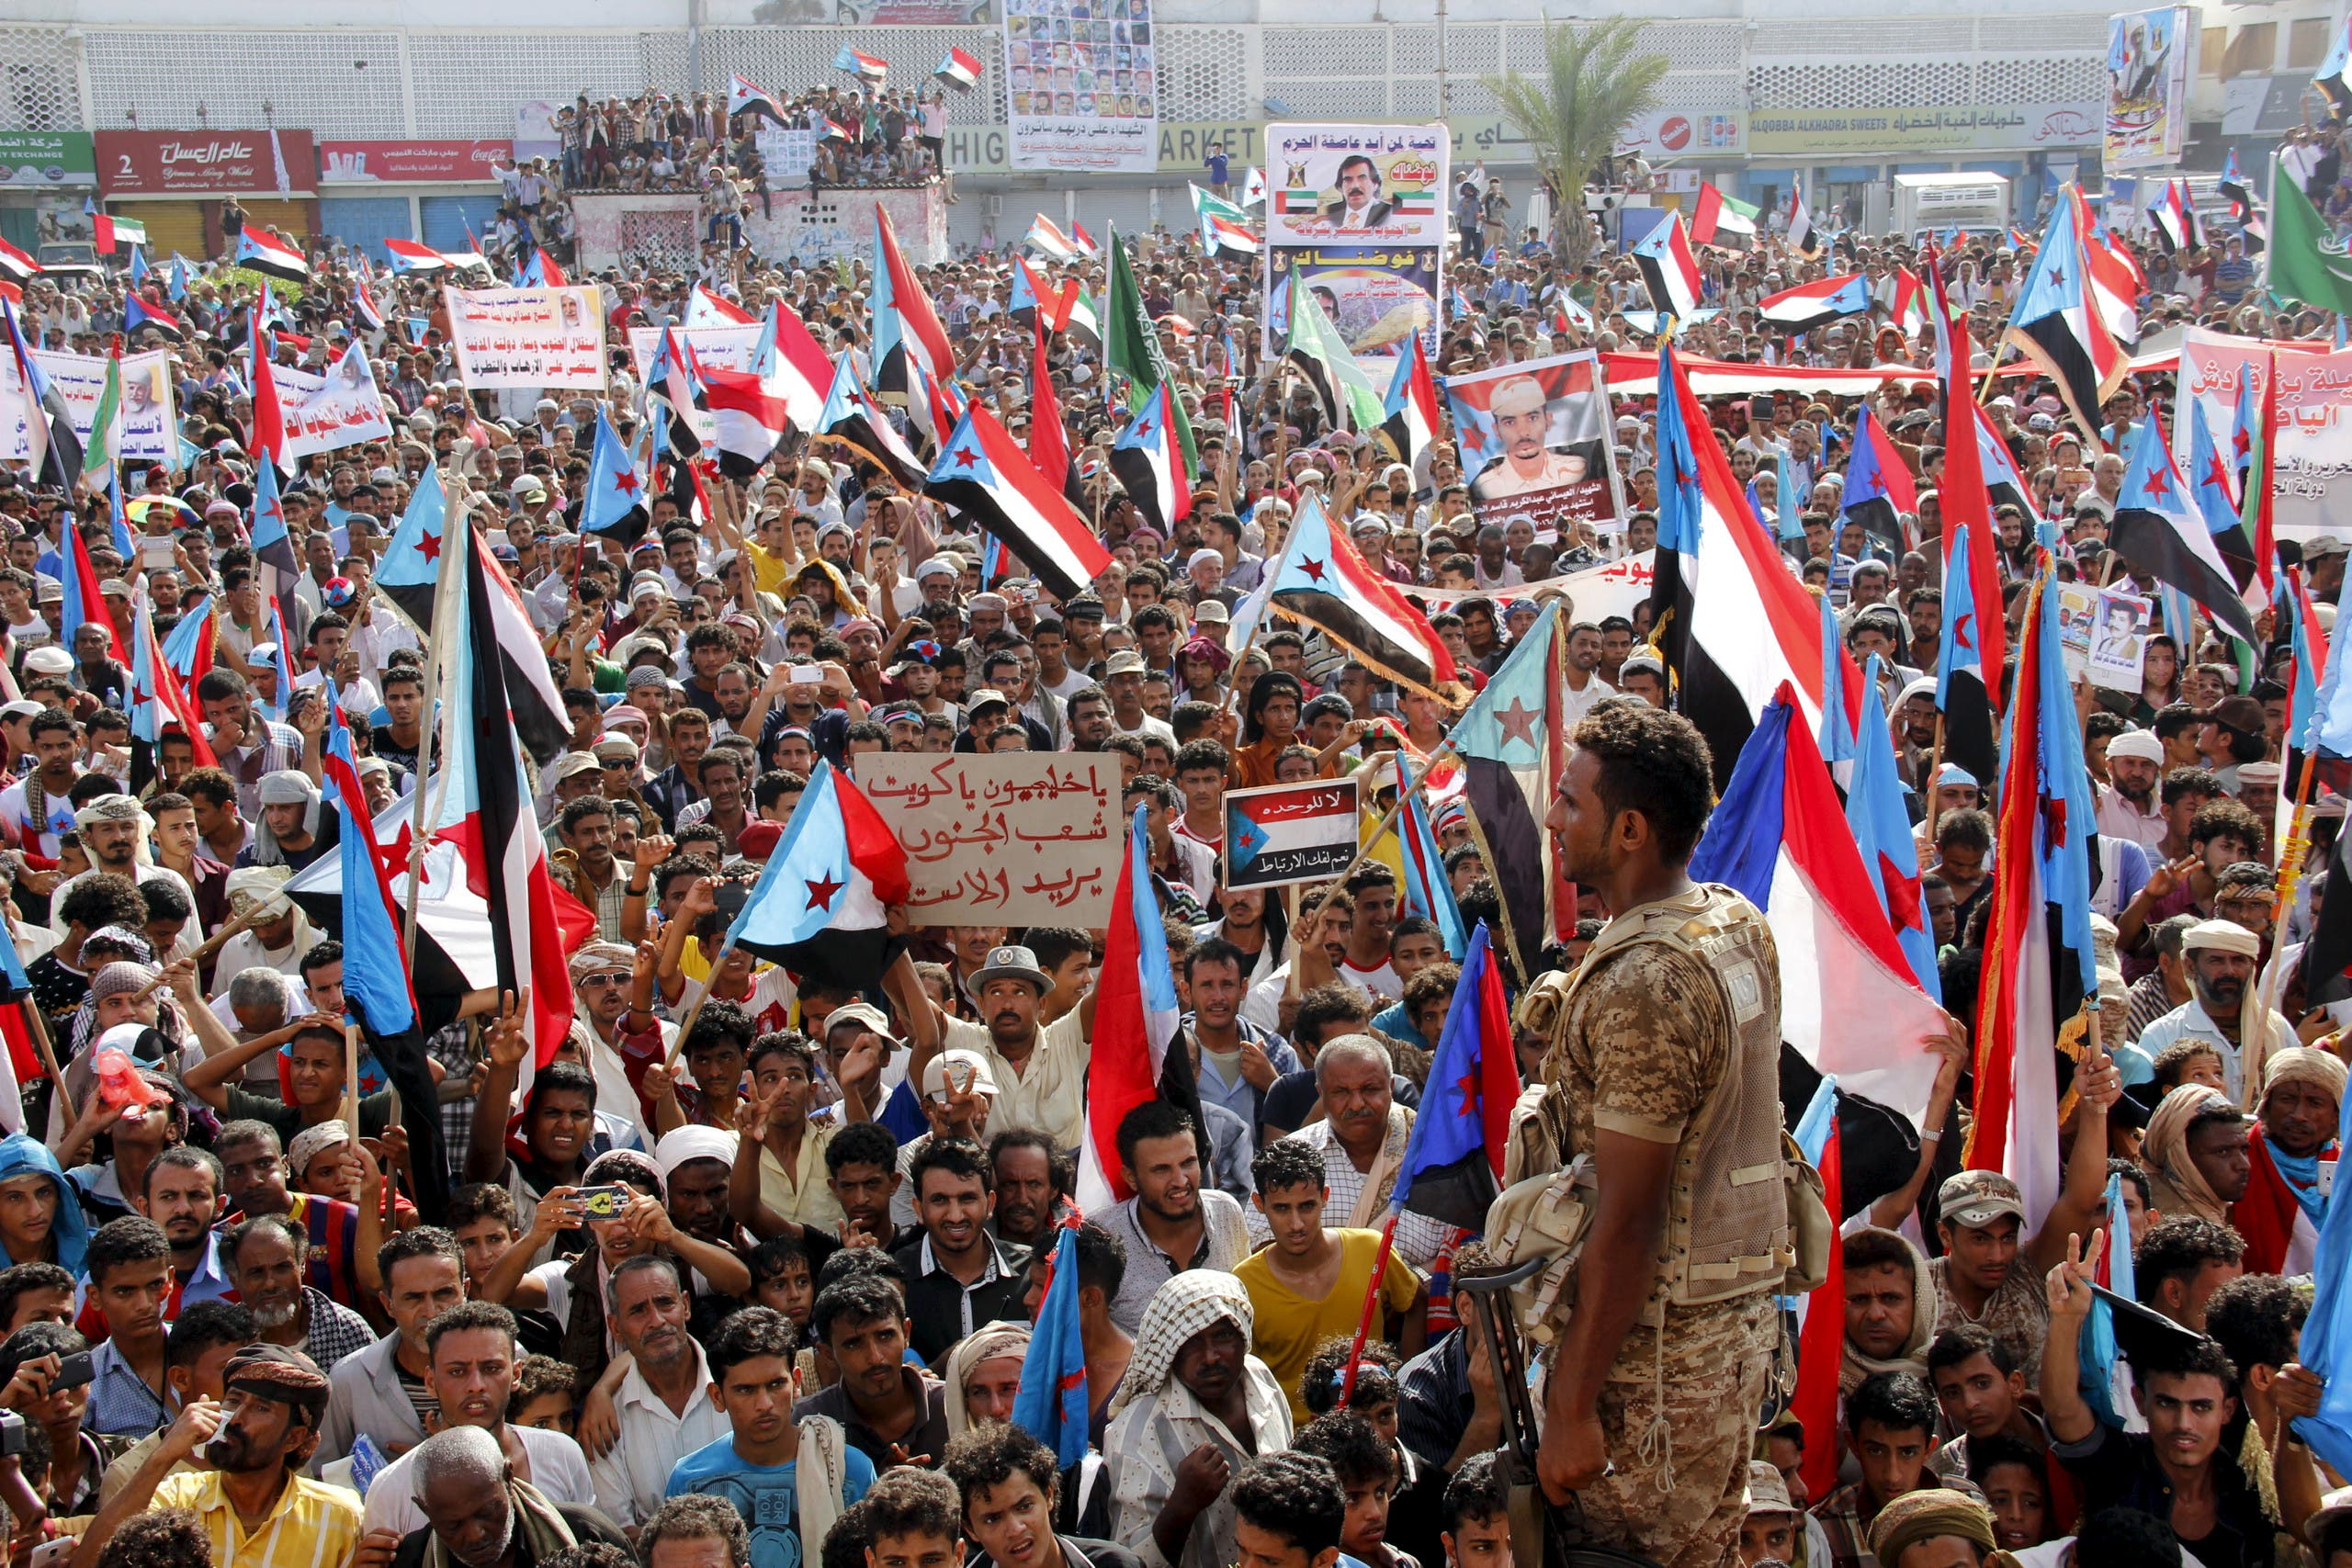 Supporters of the separatist Southern Movement demonstrate to demand the secession of south Yemen, in the southern port city of Aden April 18, 2016. Reuters